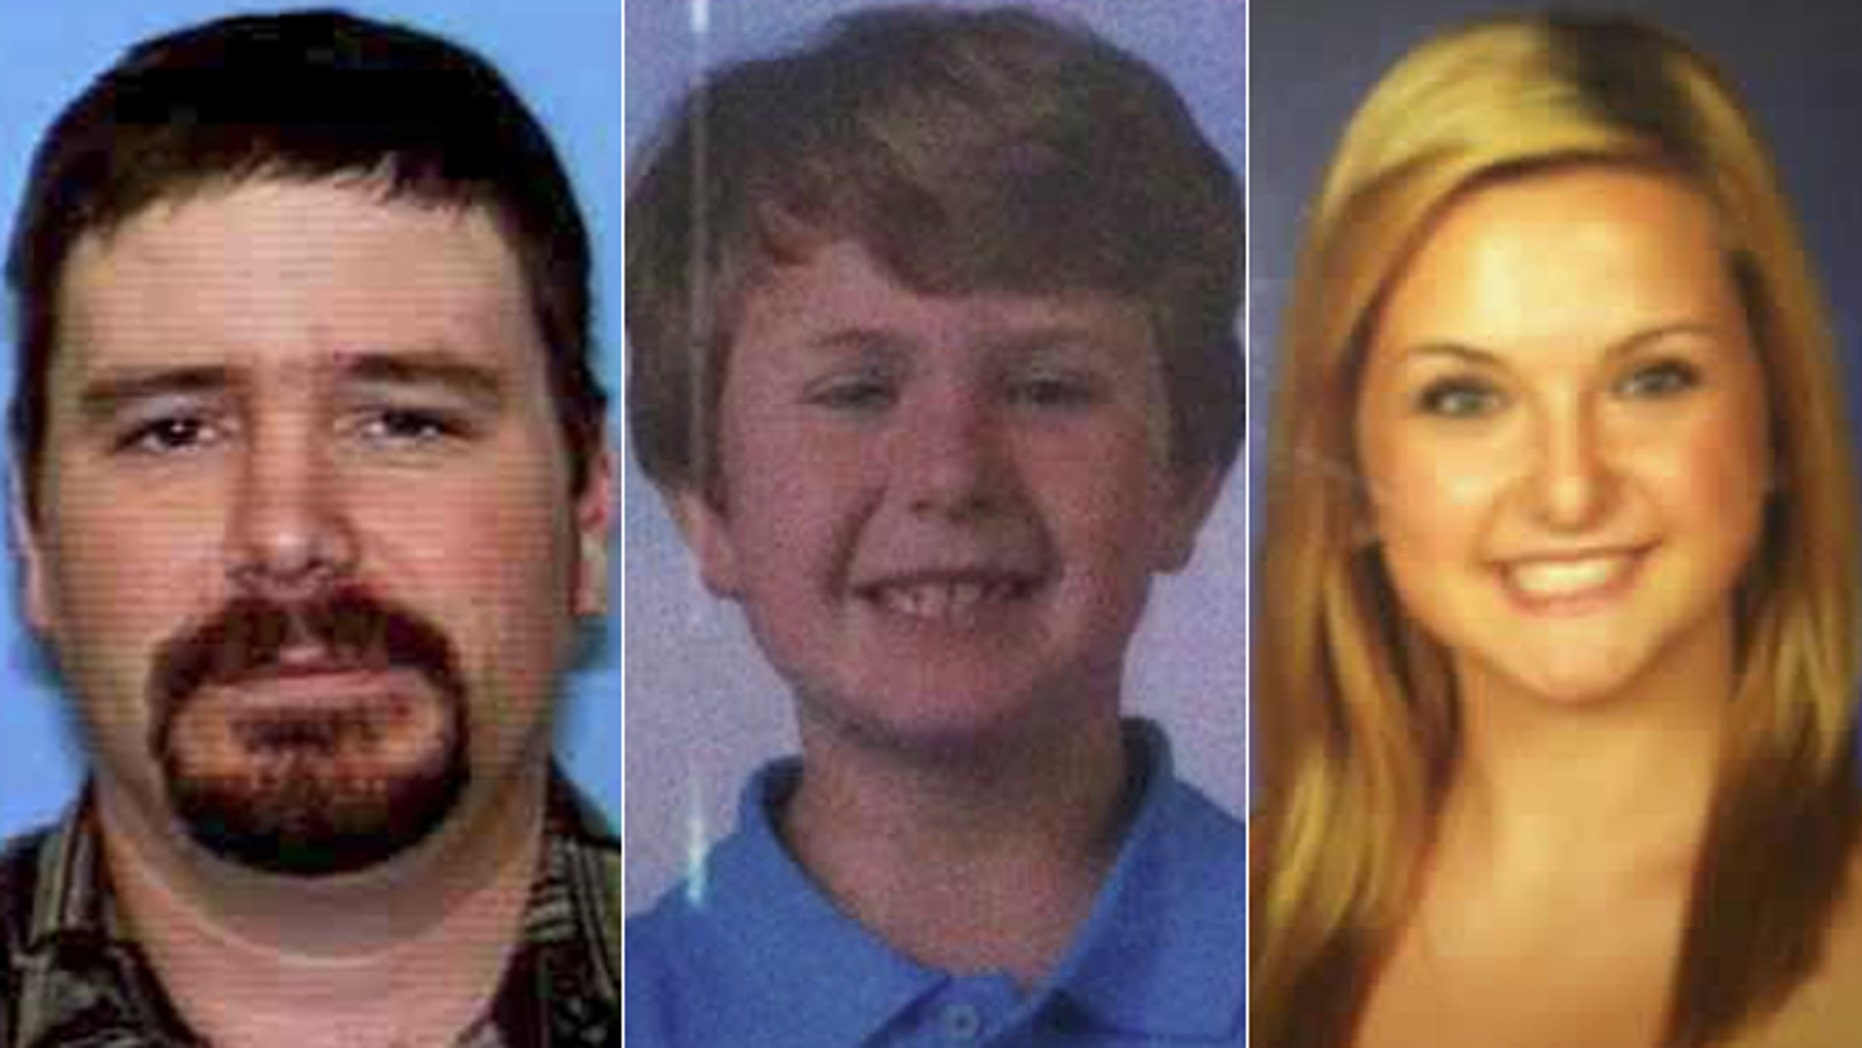 "The suspect, James Lee DiMaggio, 40, left, is being sought in the disappearance of Ethan Anderson, 8, and Hannah Anderson, 16. DiMaggio and the children's mother, Christina Anderson, 44, who was found dead on Sunday, were in a ""close platonic relationship,"" according to authorities. (California Highway Patrol)"